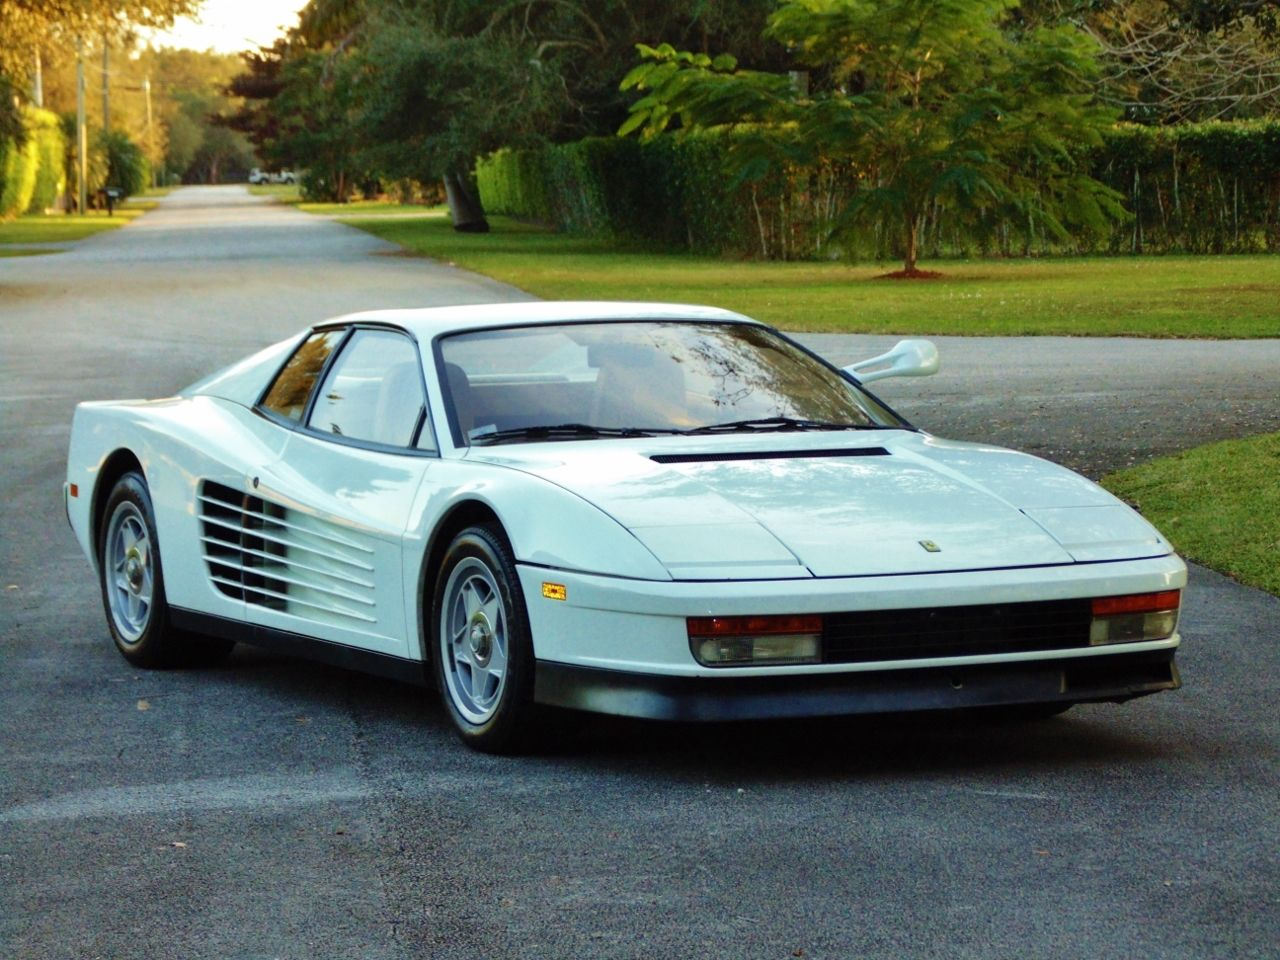 Miami Vice Ferrari Testarossa For Sale (12)